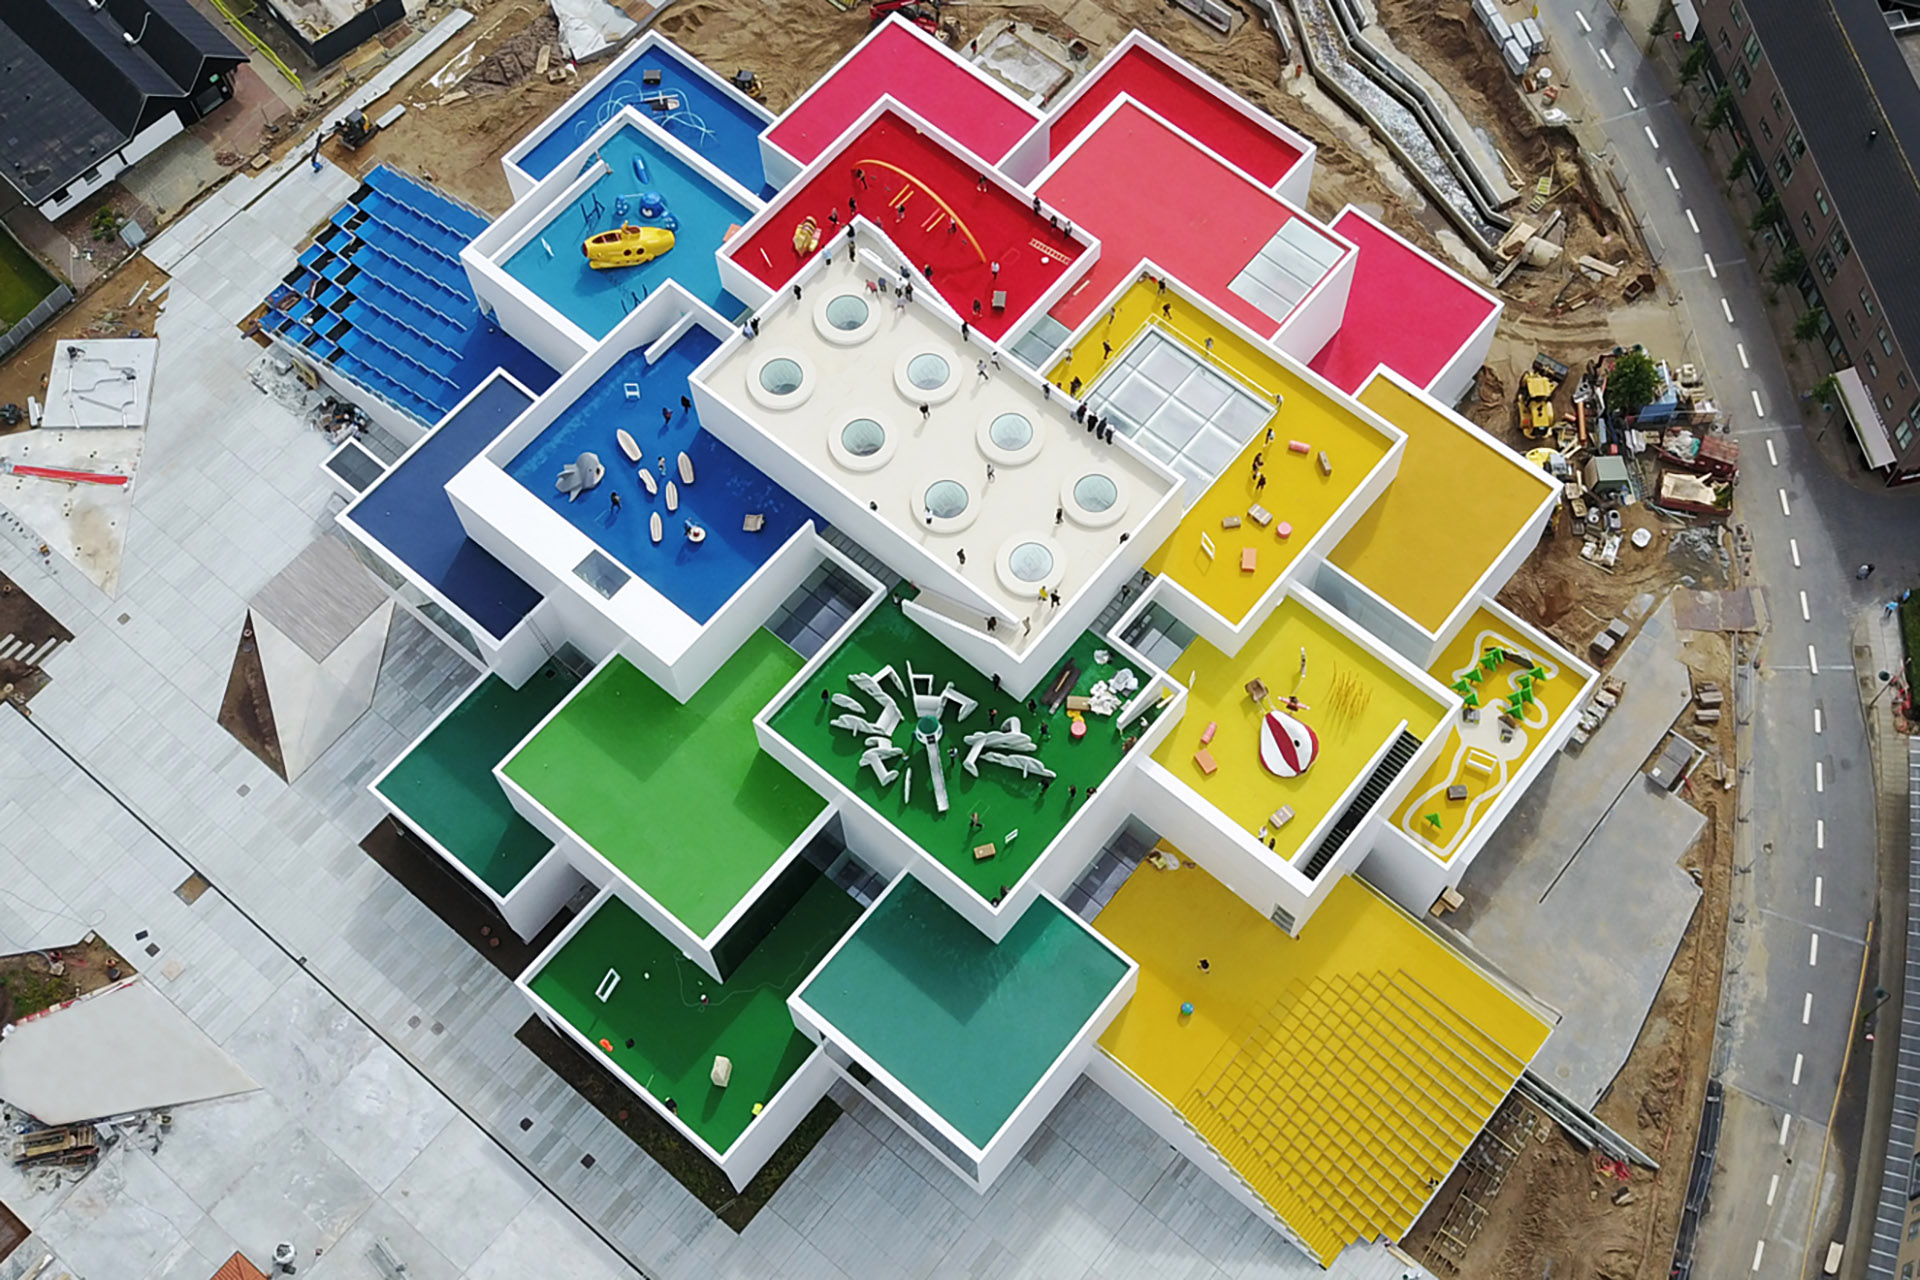 lego house escalera interior